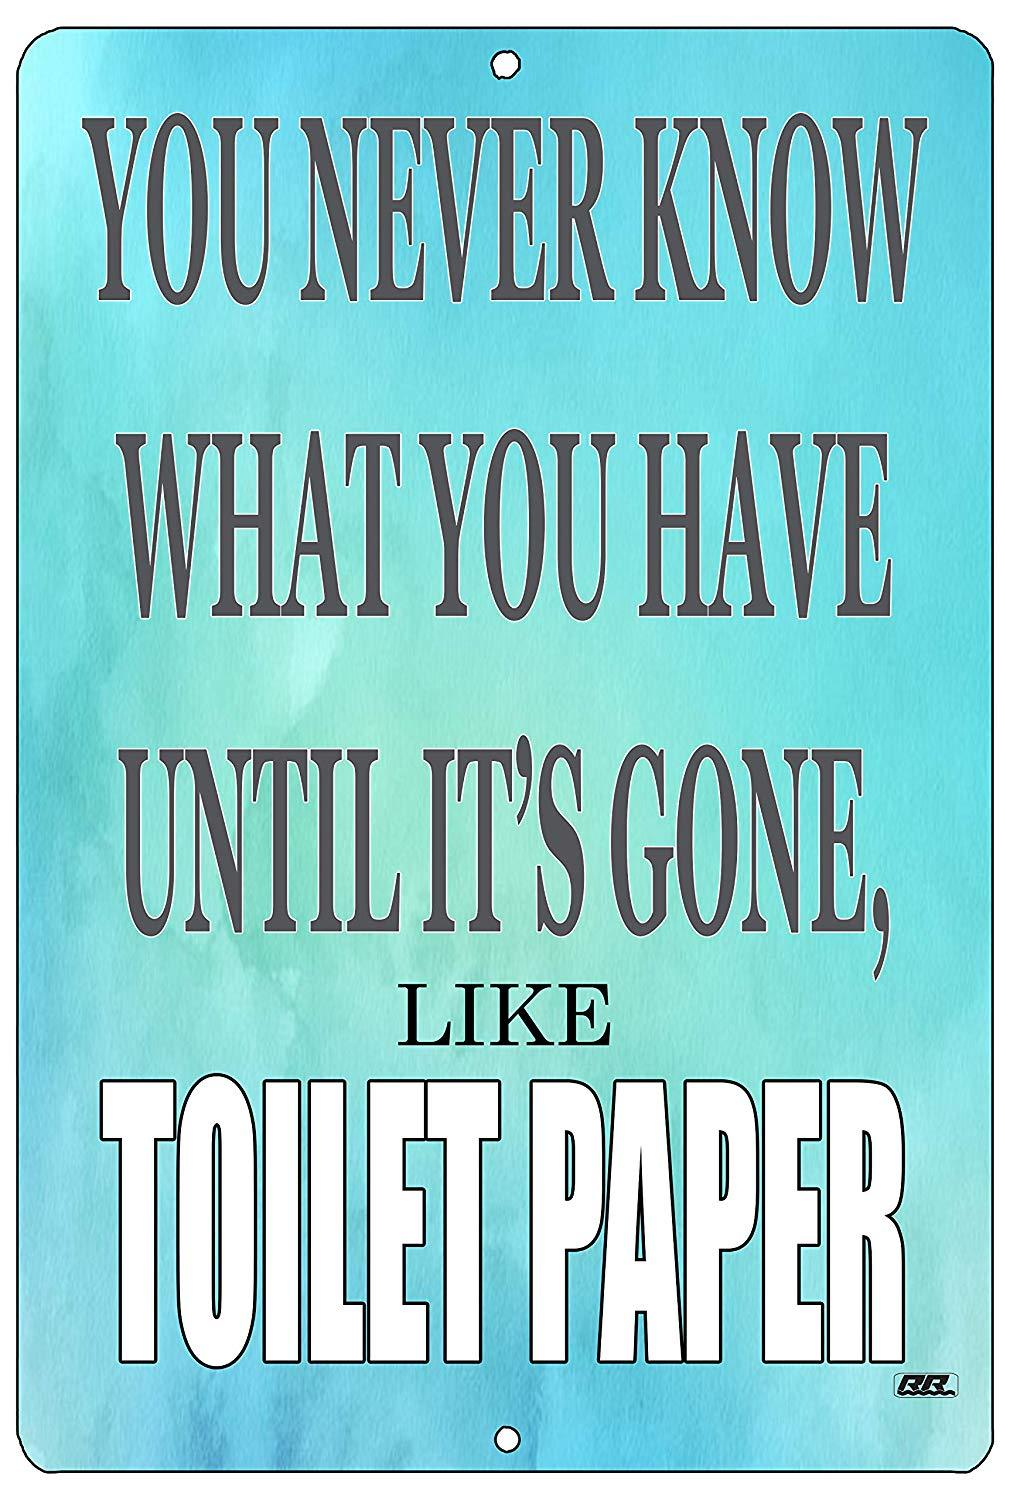 Funny Sarcastic Home Bathroom Metal Tin Sign Wall Decor Bar Toilet Paper - Funny Signs - Rogue River Tactical  - Rogue River Tactical